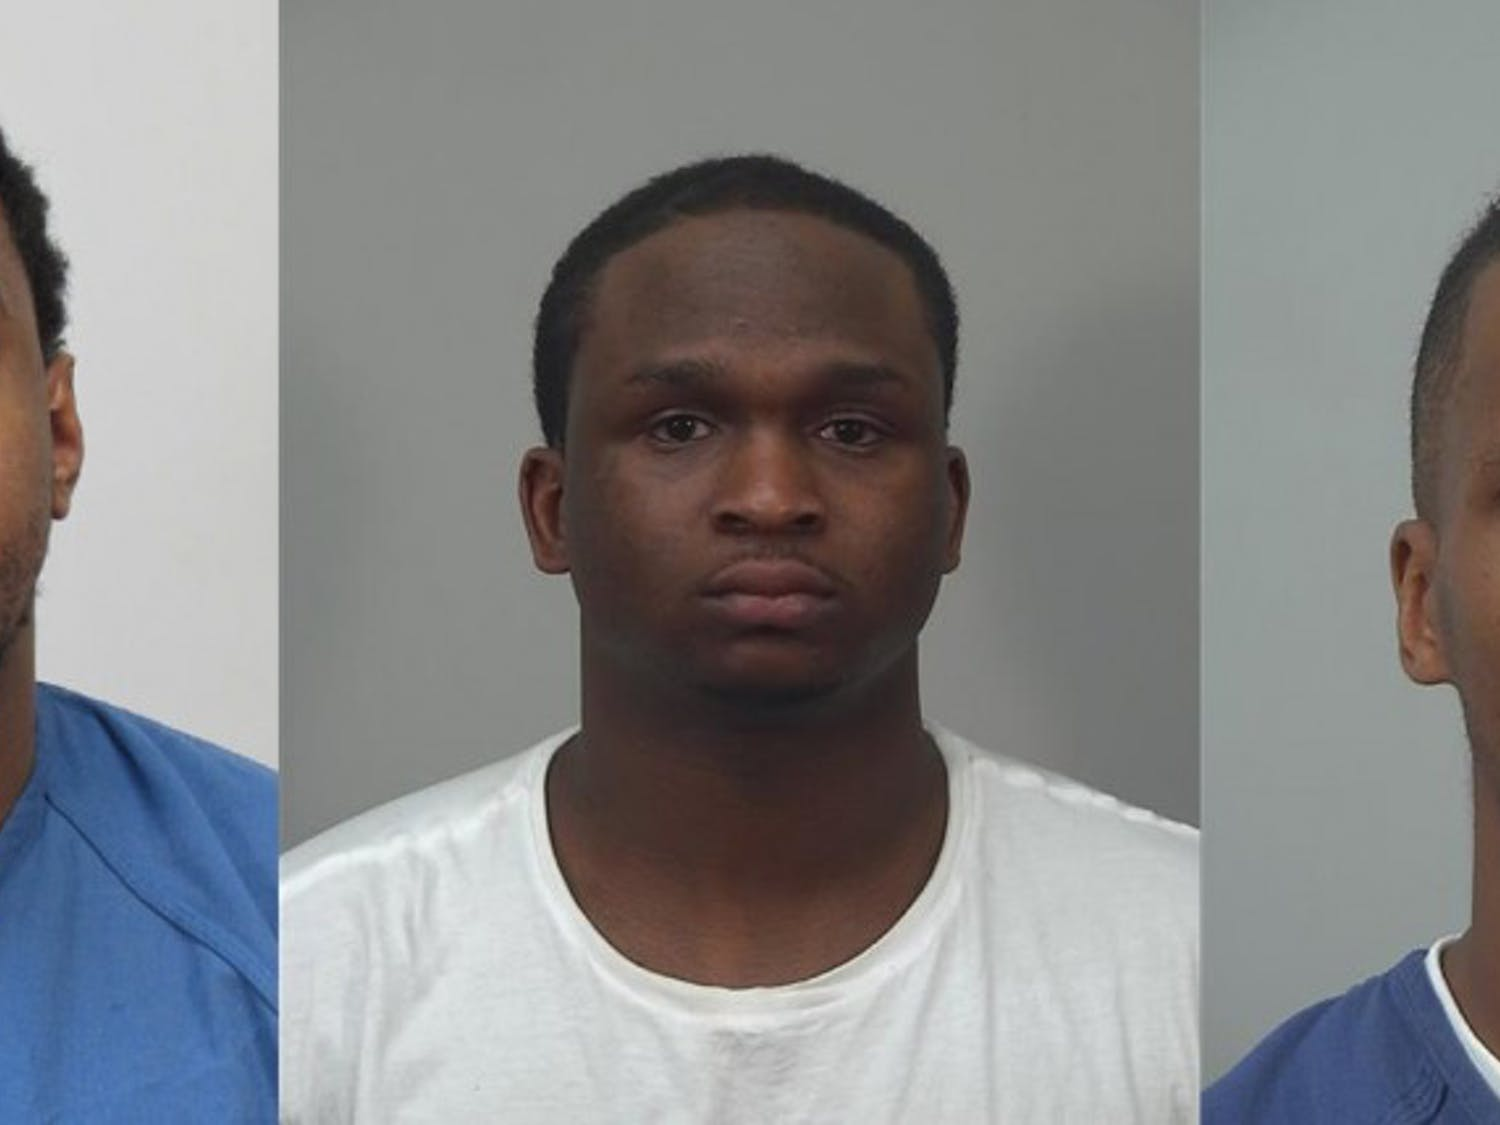 William Flowers, 25, Billy Richmond, 35, and Travis Smith Jr., 28, are wanted for unrelated charges, but may have information about the homicide, according to MPD.